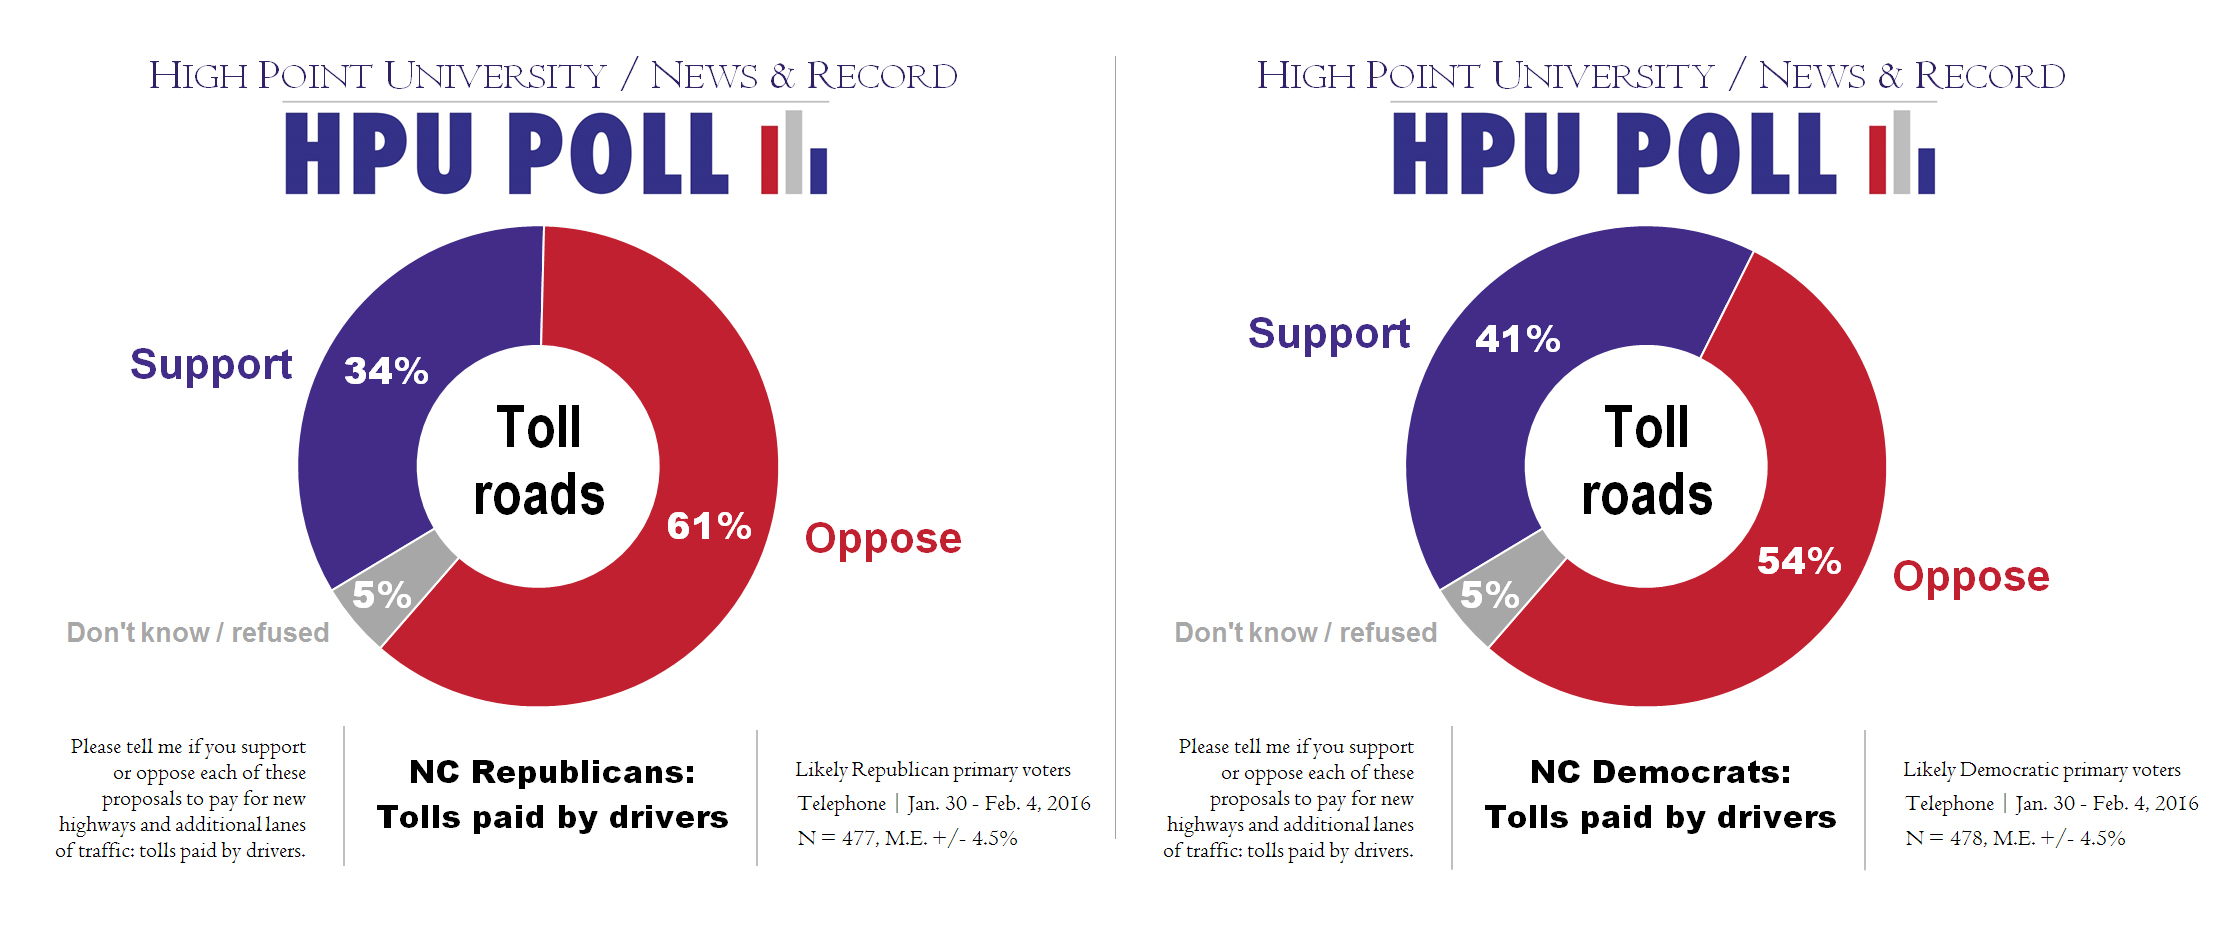 HPU N&R Poll - Toll roads - Rep vs Dem